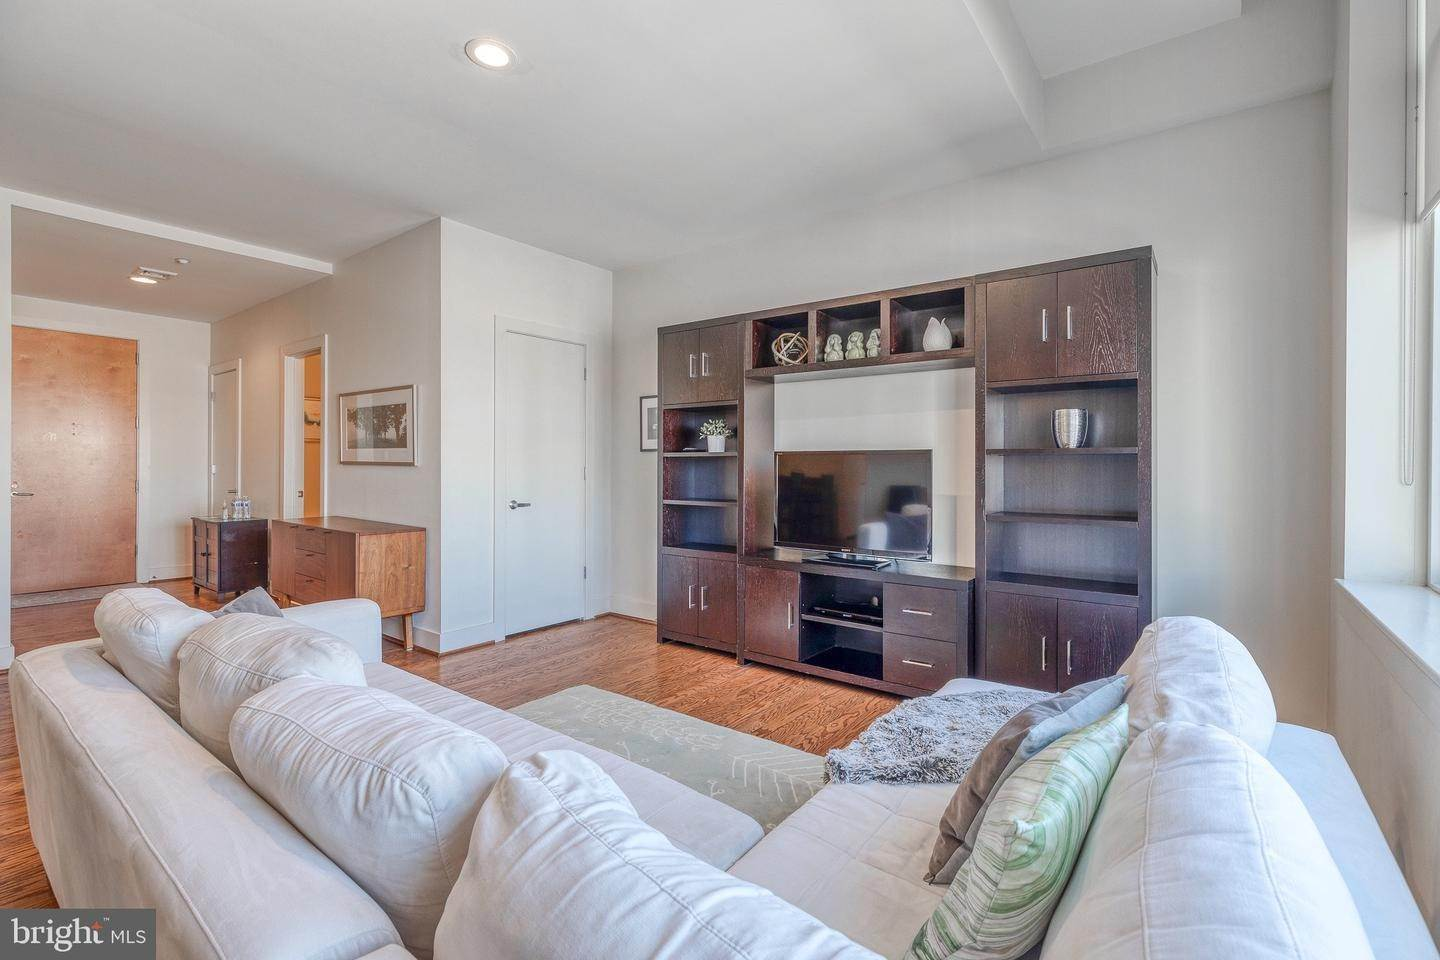 17. Apartments for Sale at 23 S 23RD ST #5B Philadelphia, Pennsylvania 19103 United States